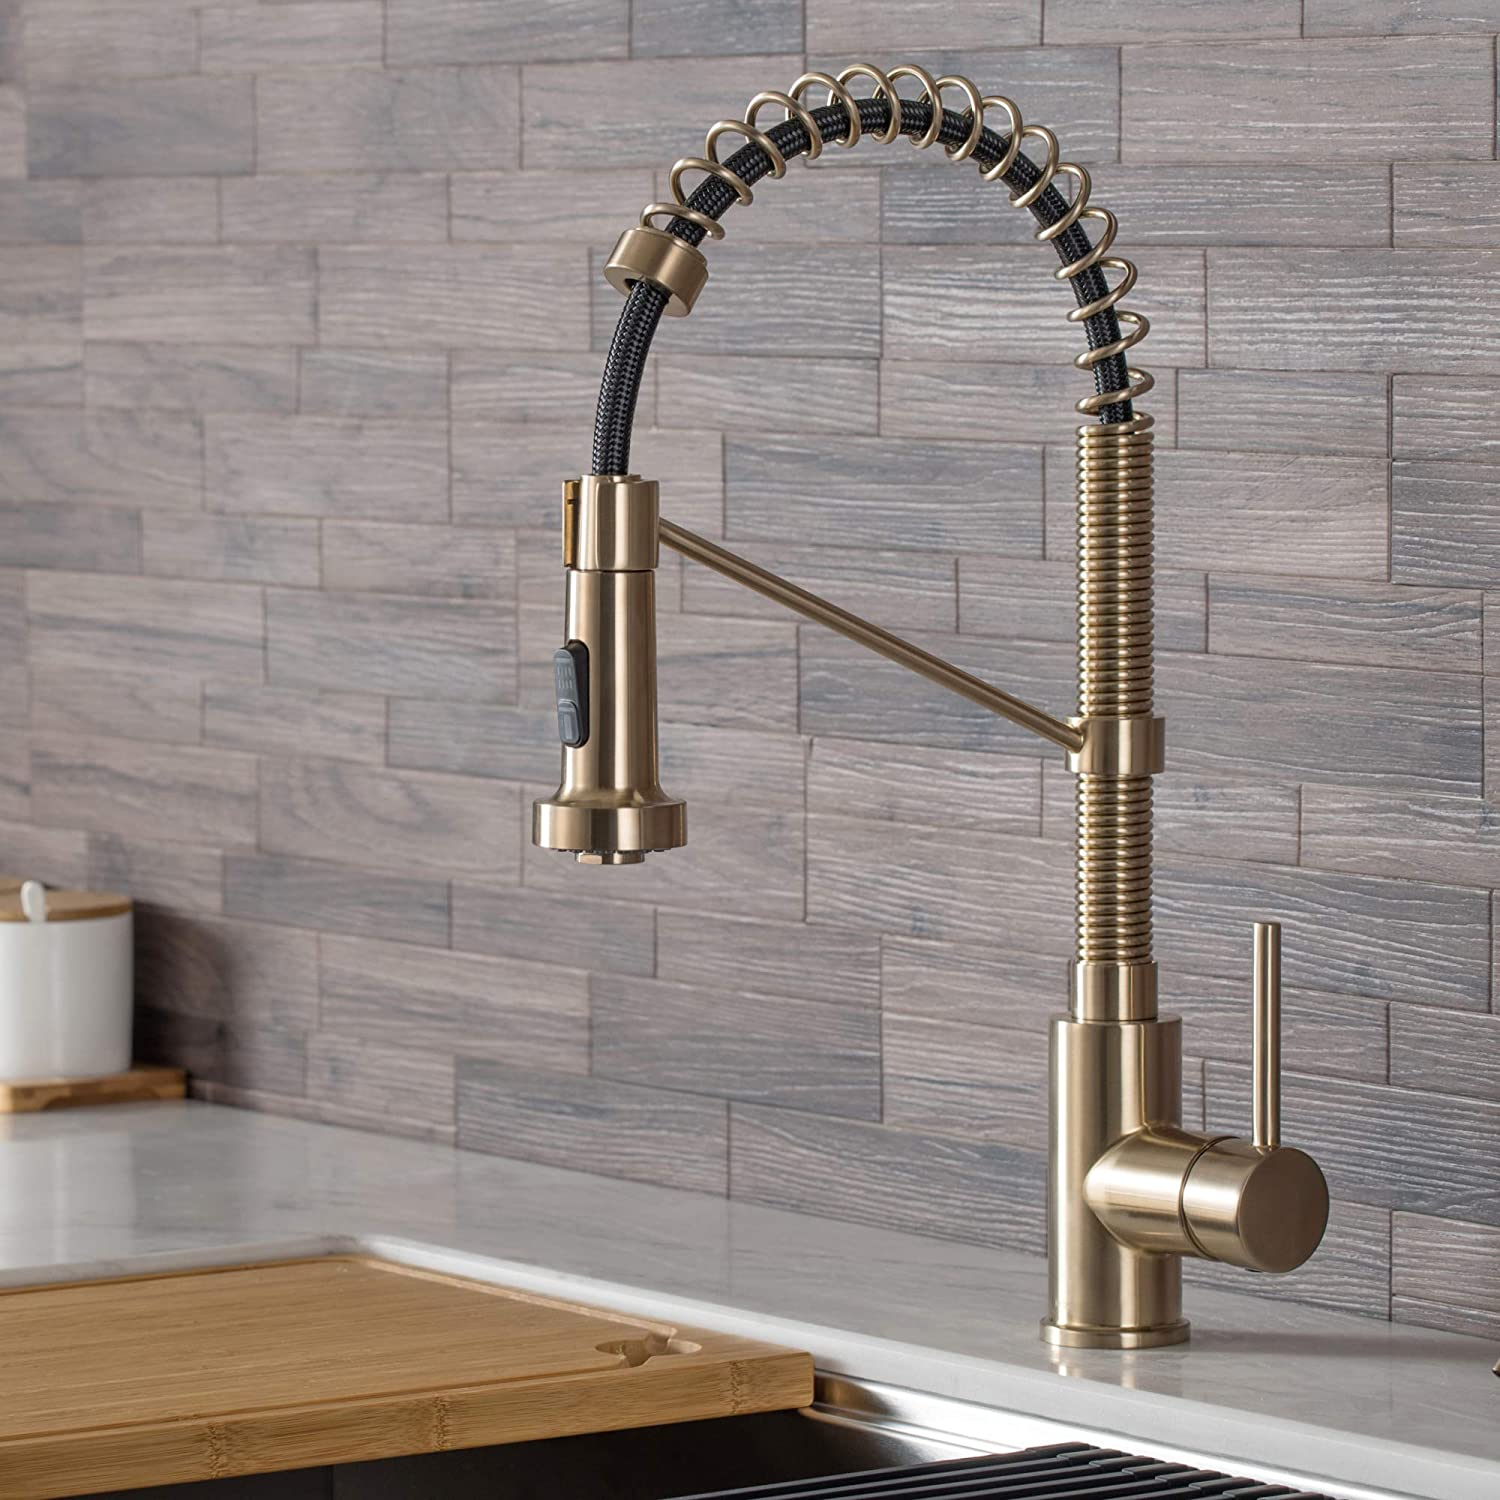 Kraus Kpf 1610sfbg Bolden 18 Inch Single Handle Commercial Style Pull Down Kitchen Faucet With Dual Function Sprayer Spot Free Brushed Gold Amazon Com